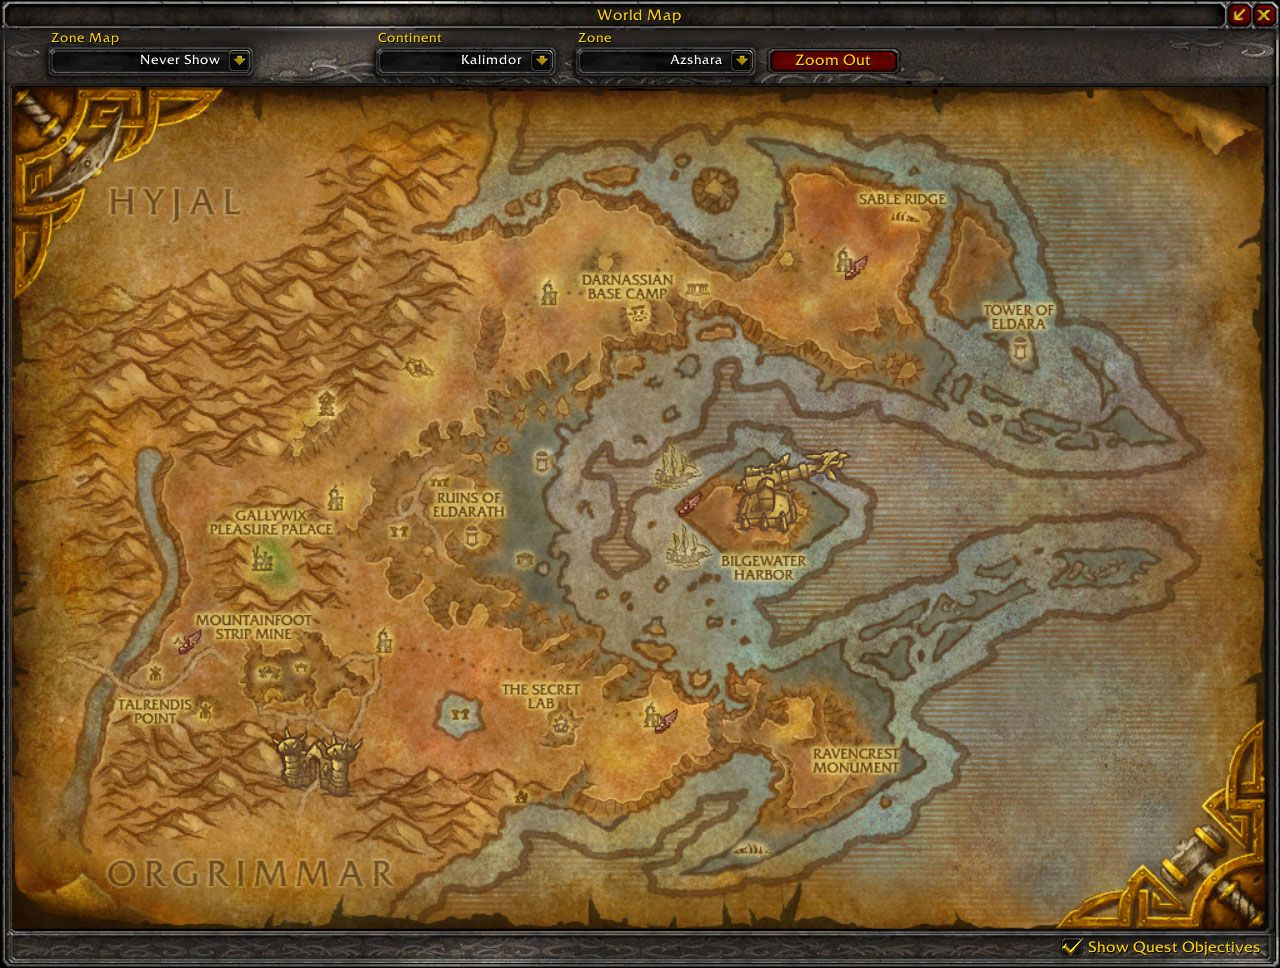 Azshara cataclysm map wow screenshot gamingcfg azshara cataclysm map wow screenshot gumiabroncs Gallery